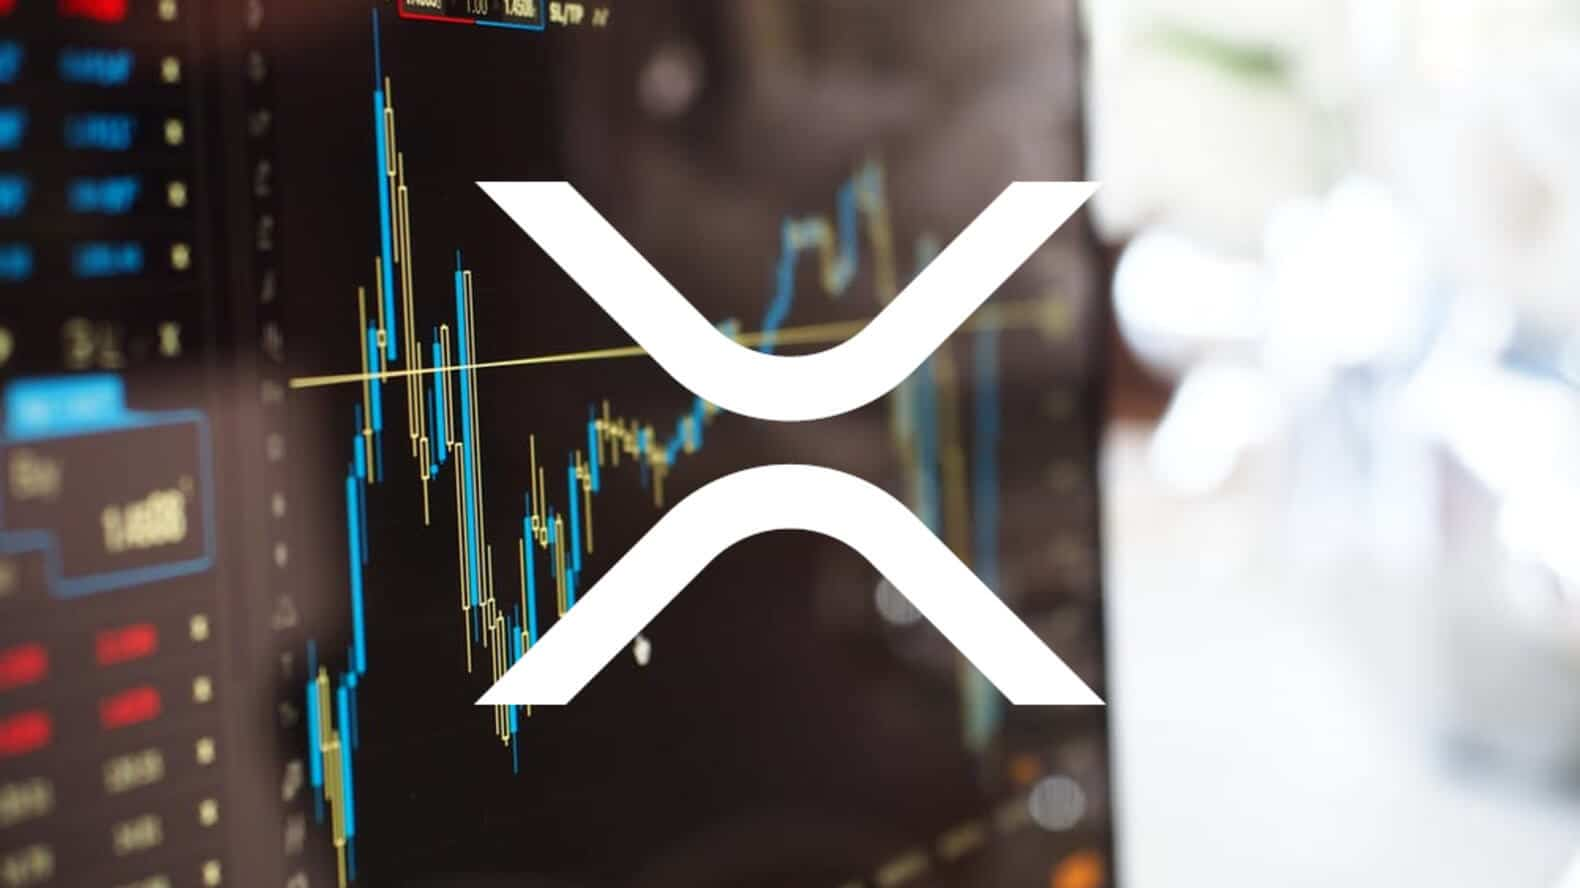 XRP Price Analysis March 16